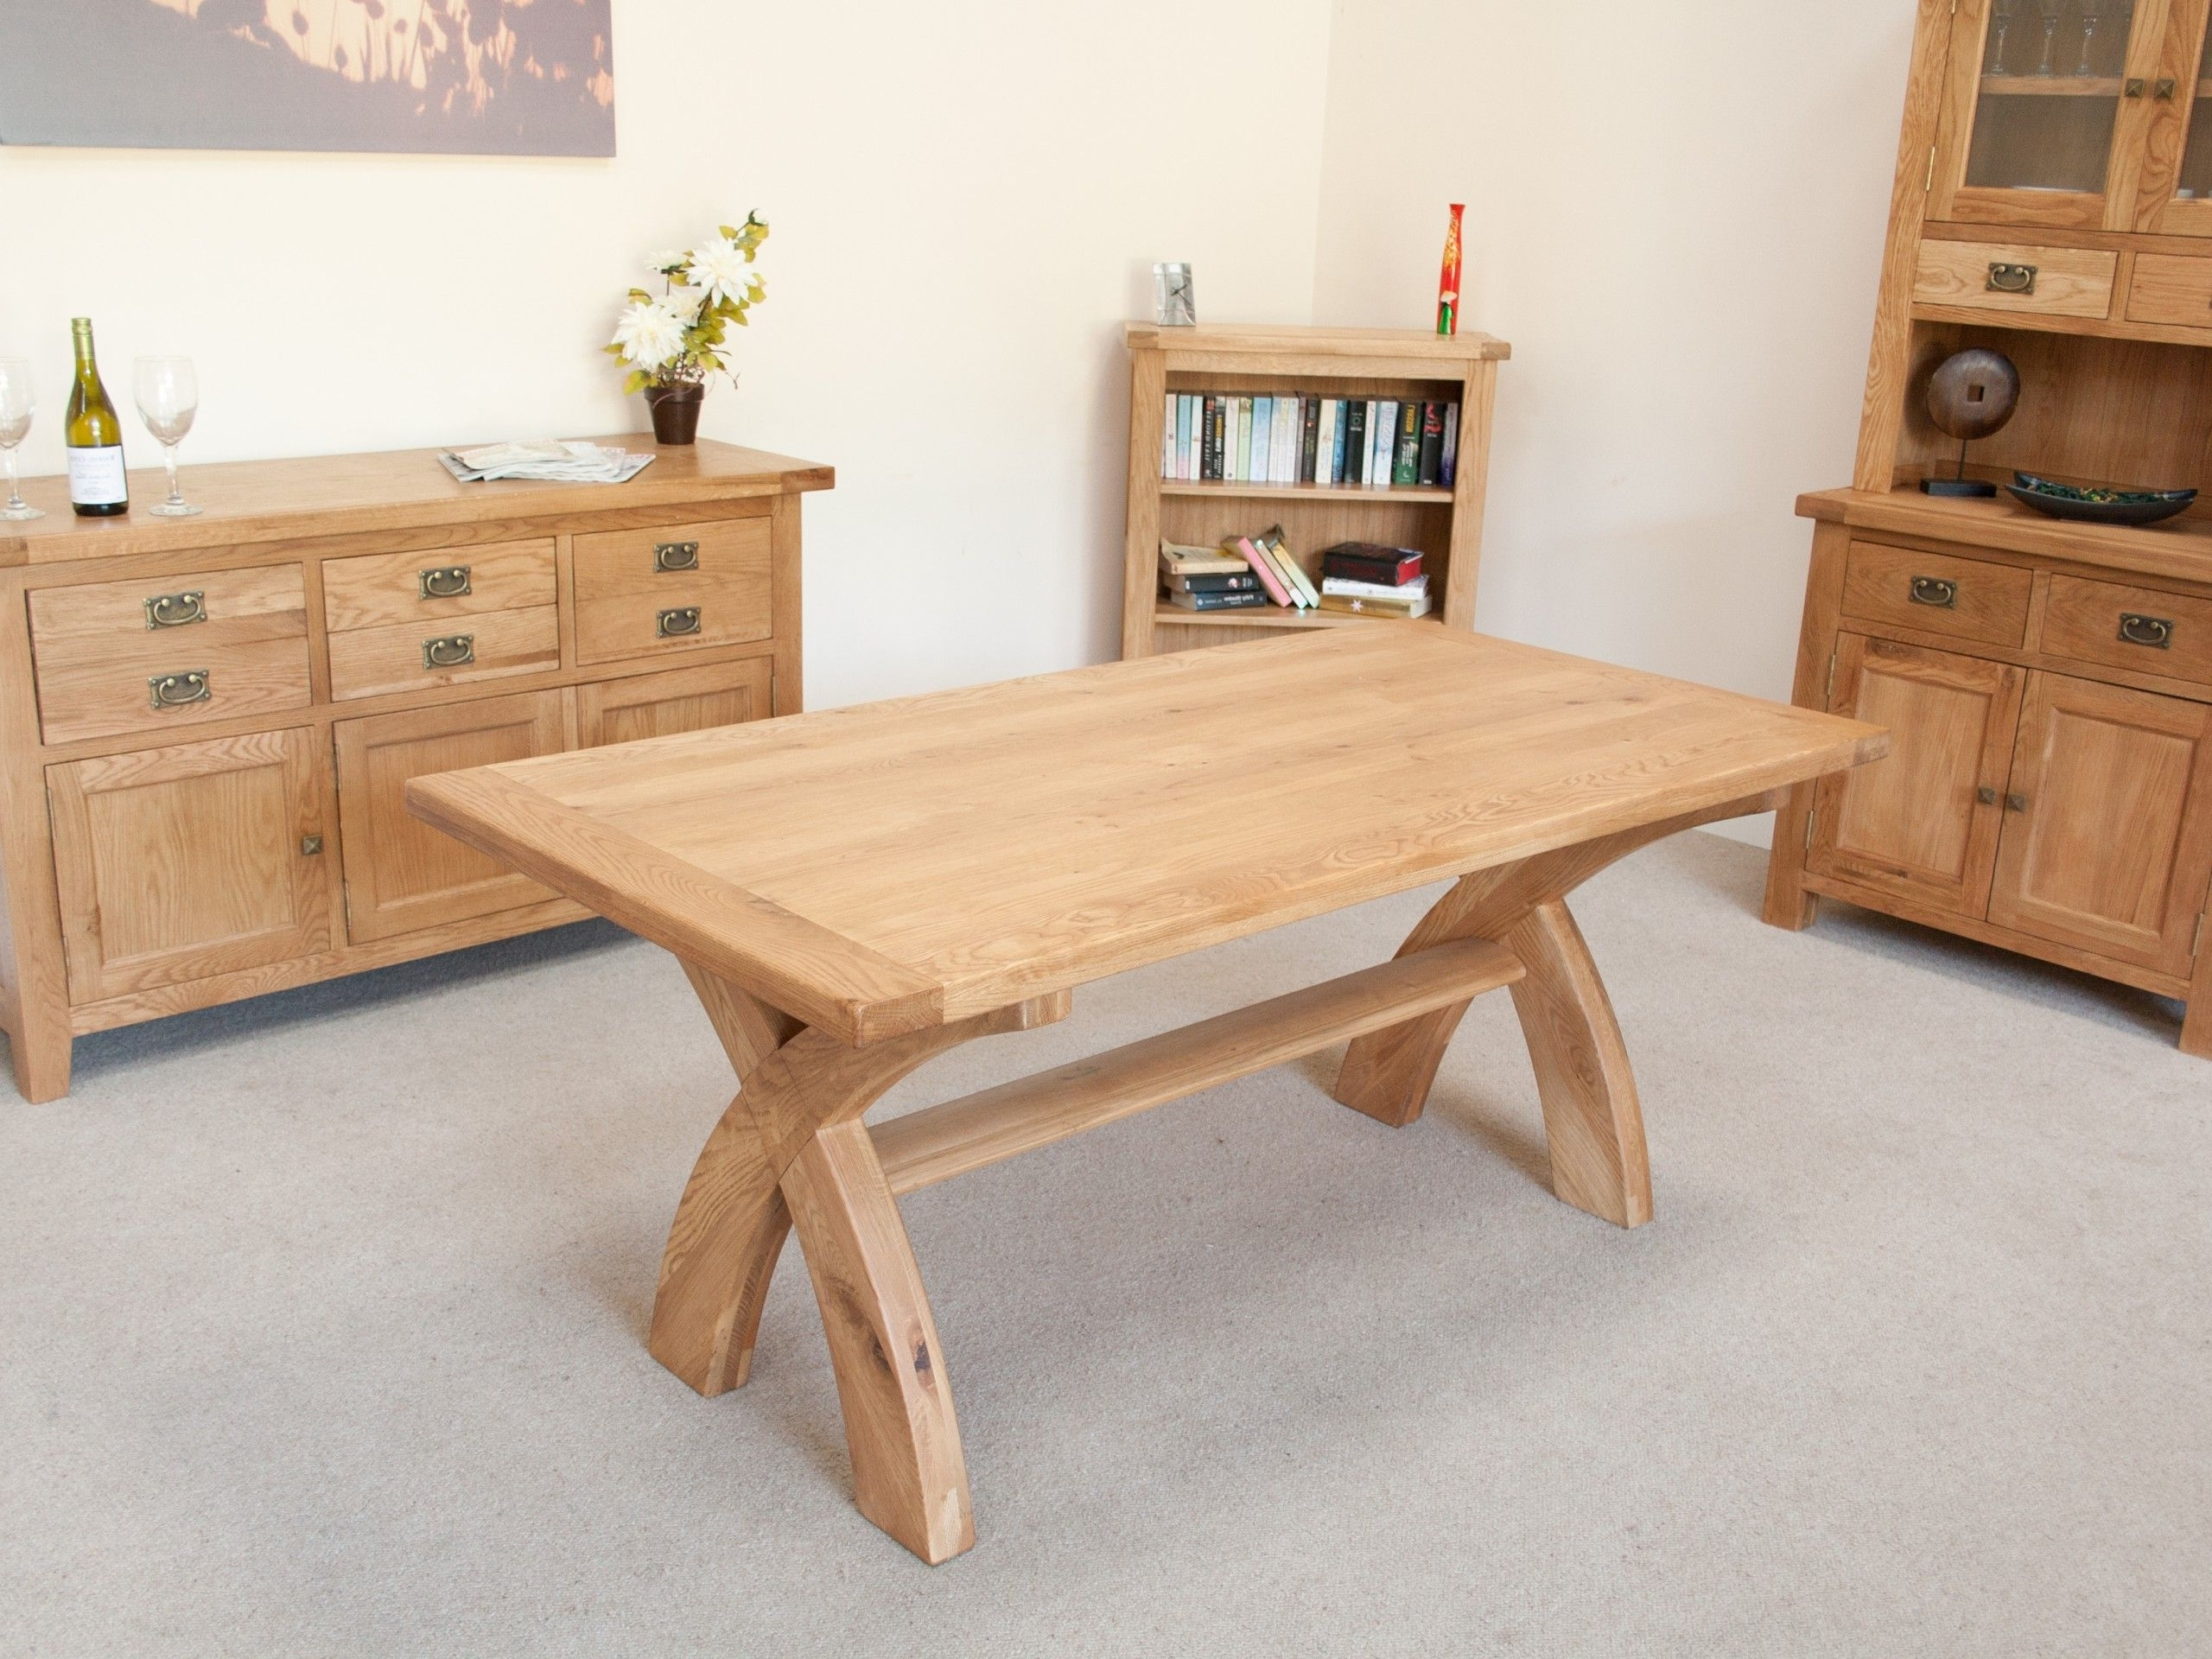 8 Seater Cross Leg Table Intended For Most Recent 8 Seater Oak Dining Tables (View 9 of 25)